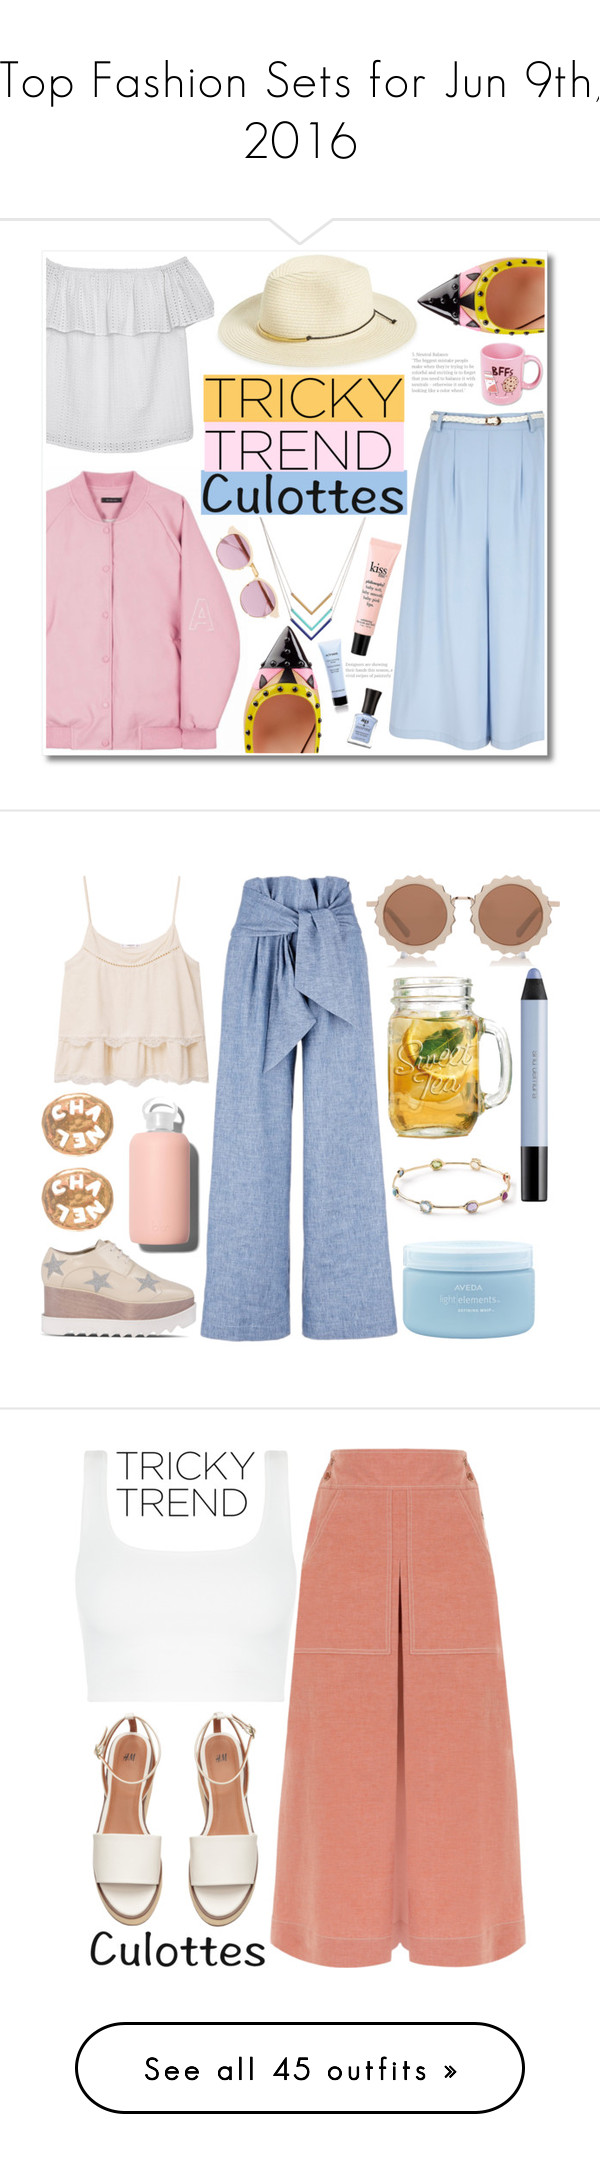 """""""Top Fashion Sets for Jun 9th, 2016"""" by polyvore ❤ liked on Polyvore featuring Yumi, Olive + Oak, Phase 3, Geranium, Fendi, philosophy, Defy & Inspire, Sheriff&Cherry, Suck and Givenchy"""